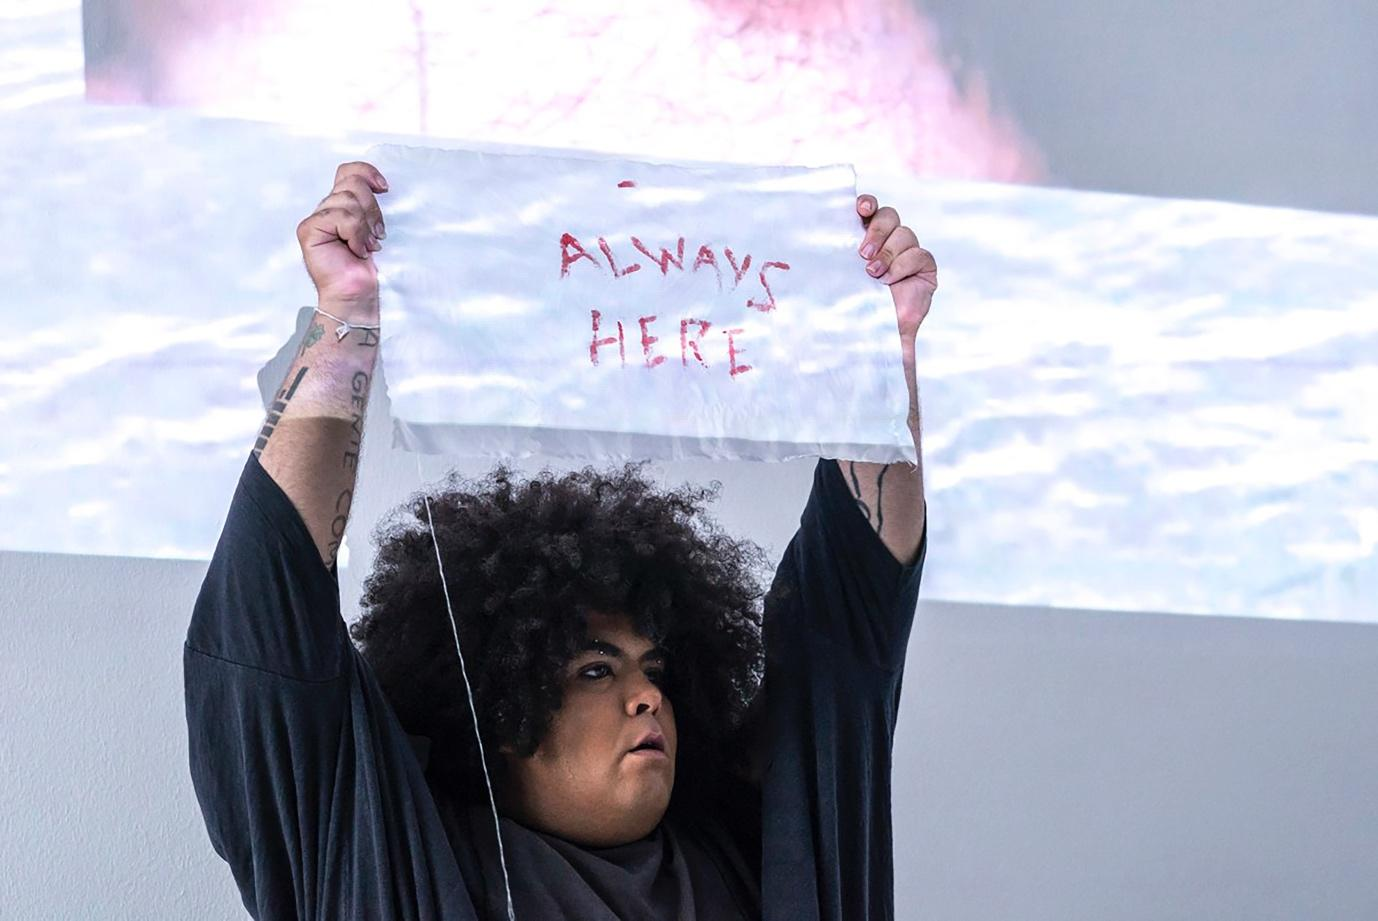 Biennale of Sydney Releases Artist List for 2020 Edition With Focus on Indigenous Artists